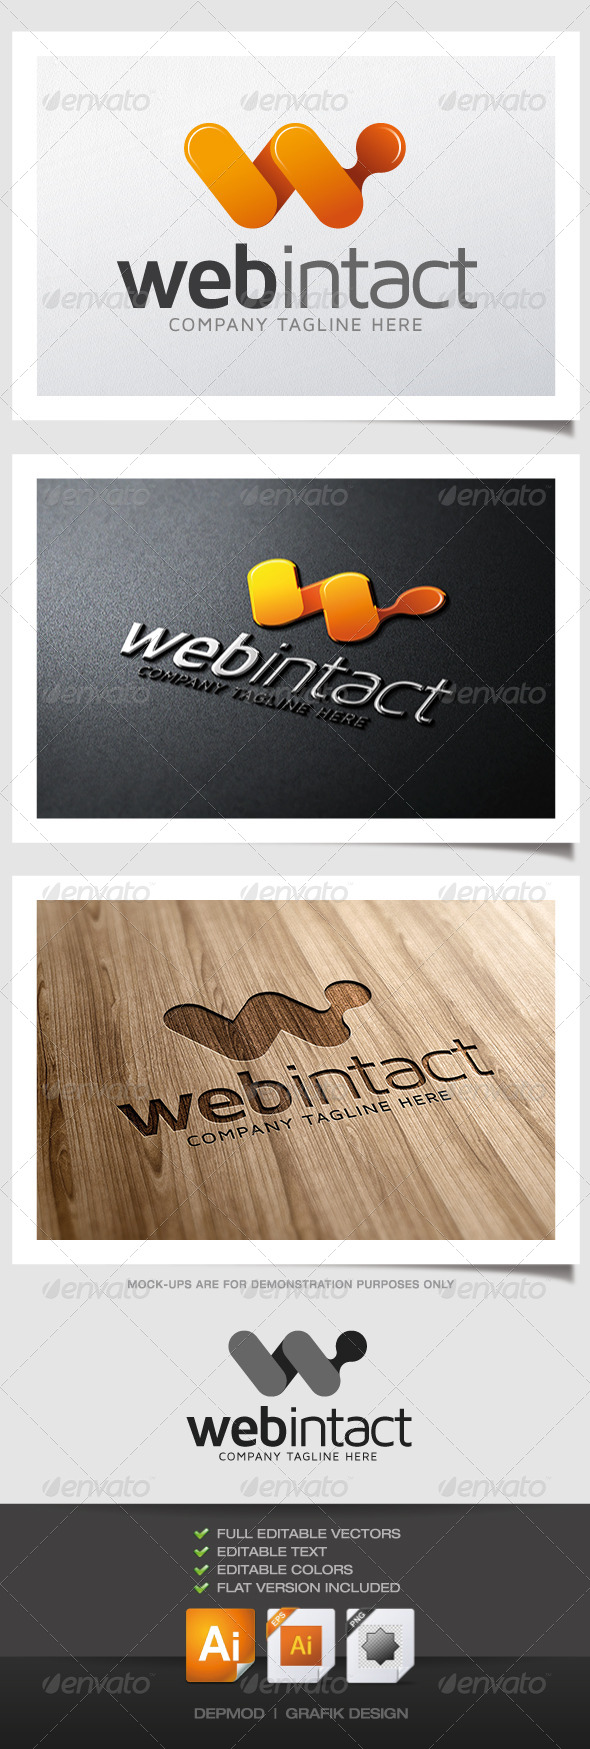 GraphicRiver Web Intact Logo 4989775